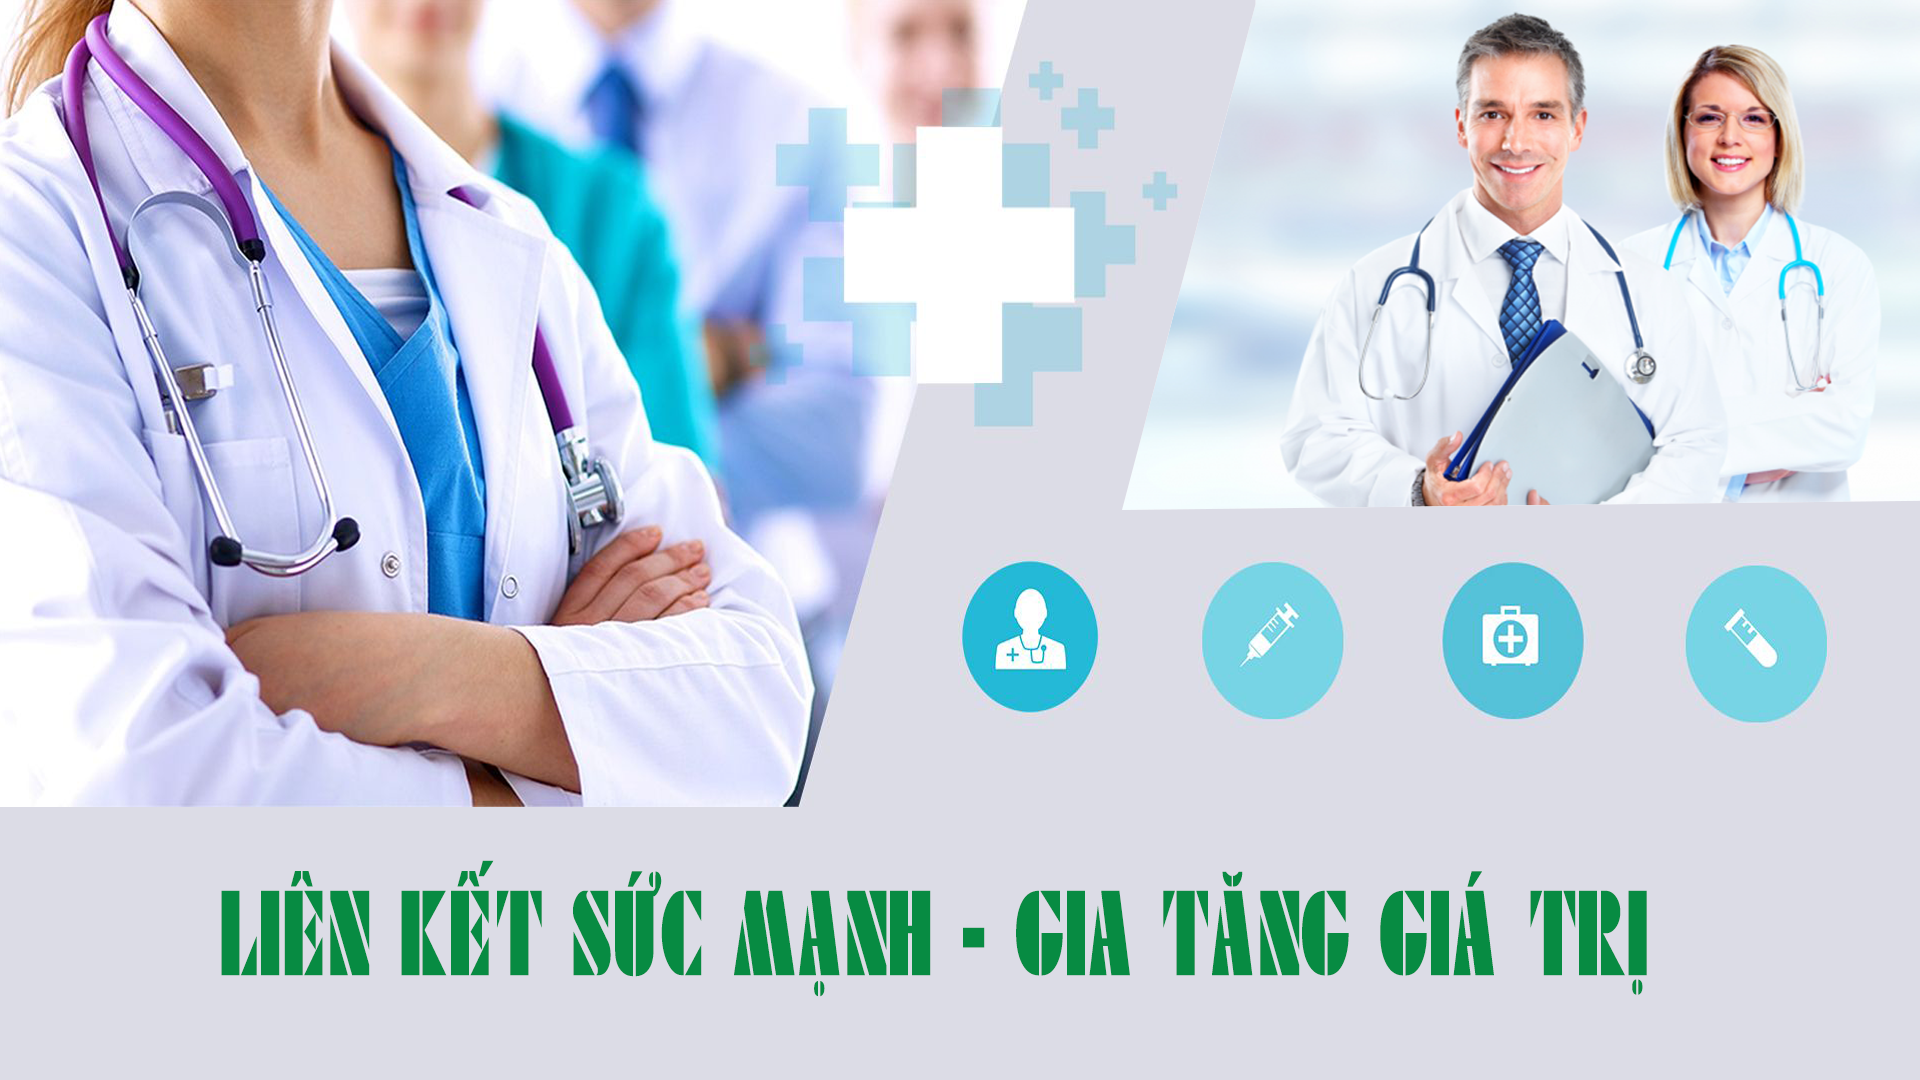 https://impac.vn/wp-content/uploads/2020/09/BANNER-4.png